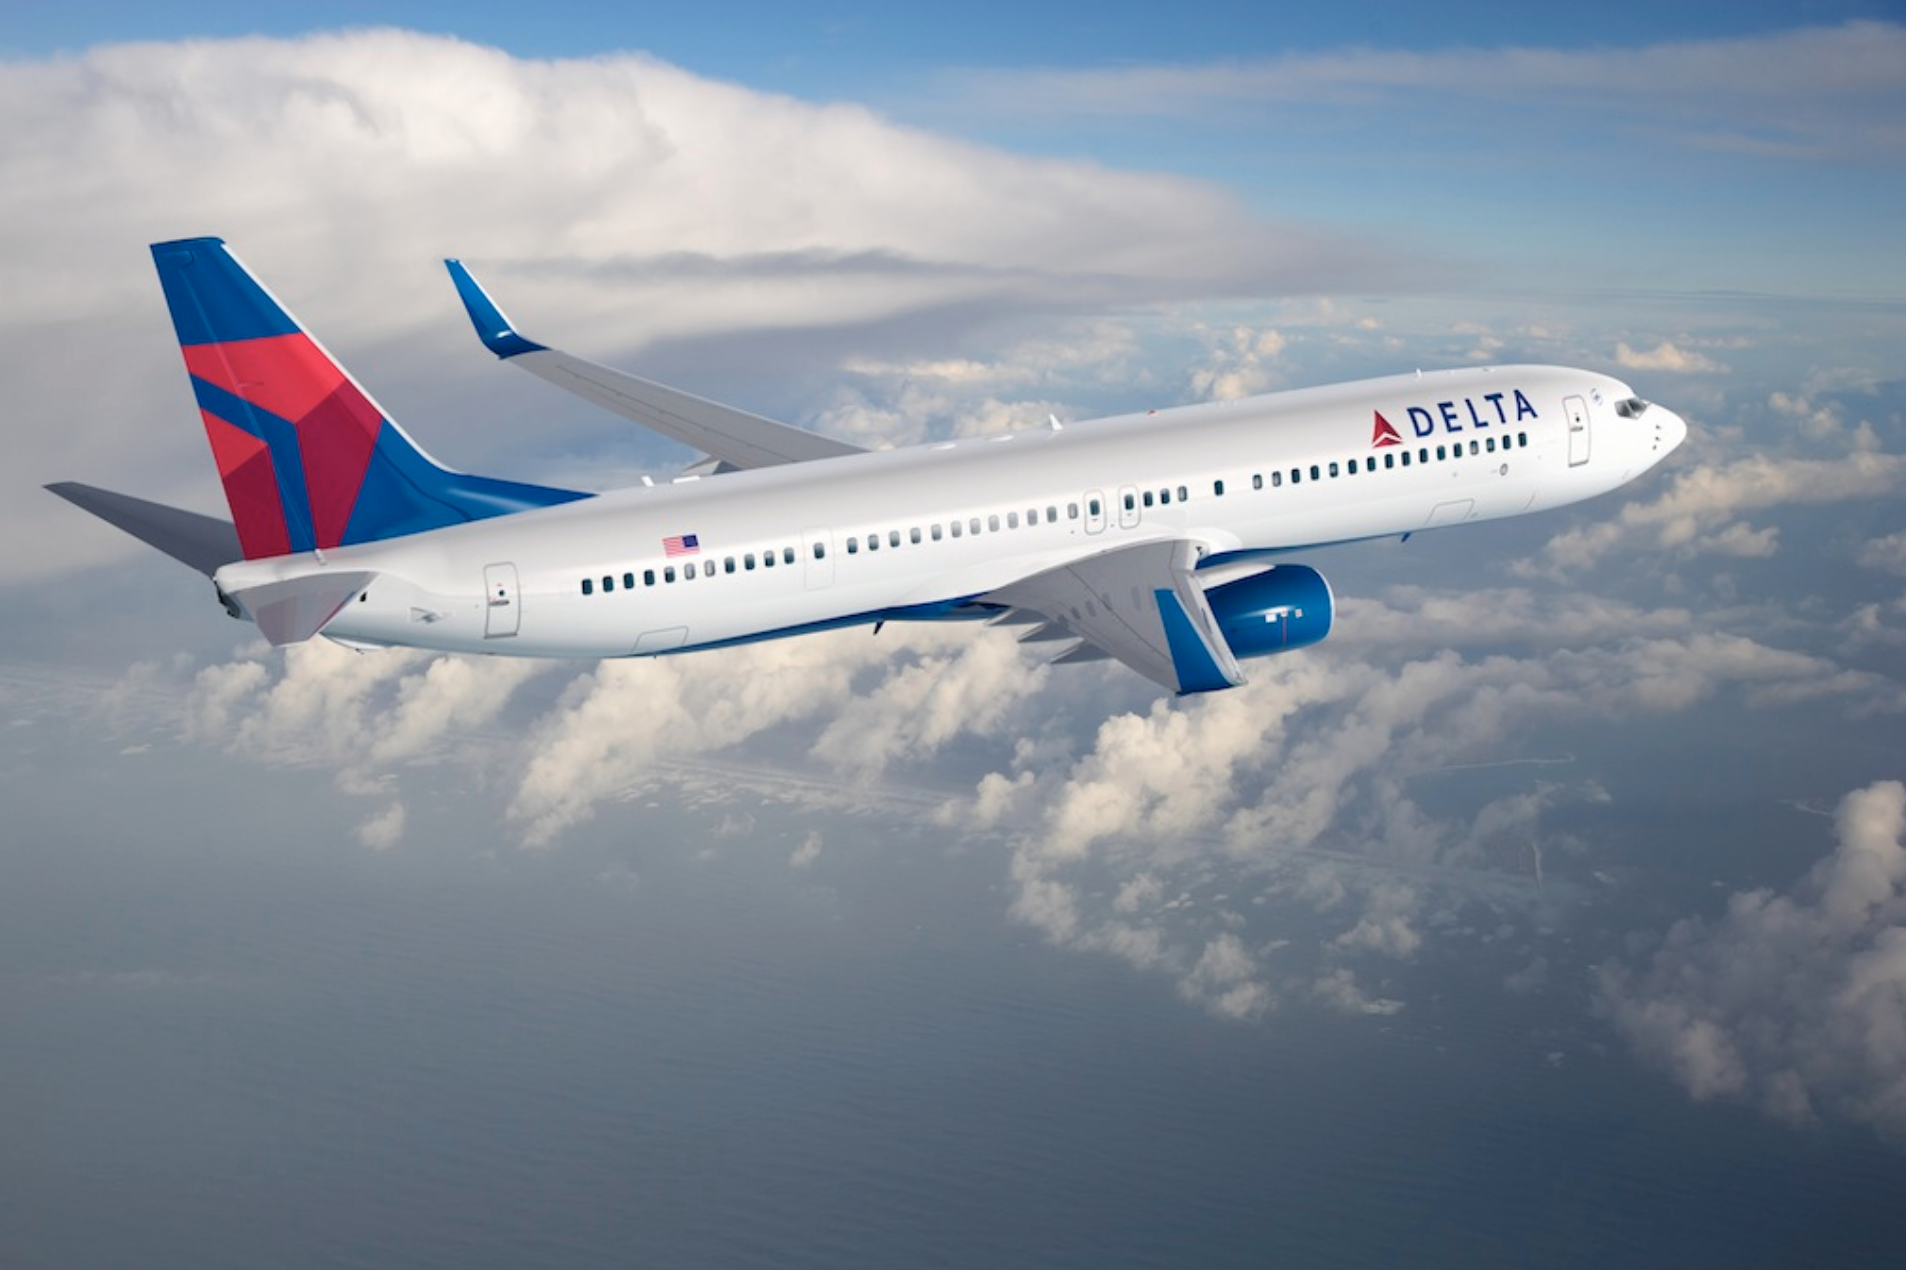 FLIGHT INFO: - New York, NYDELTA Confirmation #: GKEHDADeparting flight:Delta Flight: DL 2341JFK-ATLDEPARTING Sept 13, 2018:FJK @6amATL @ 816amDelta Flight: DL 531ATL-CUNATL @ 945amCUN @ 1120amReturning flightDelta Flight: DL 787CUN-JFKDEPARTING Sept 16, 2018:CUN @110pmJFK @ 557pm*************************************************************Columbus, OHDELTA Confirmation #: GJ7YKJDeparting flight:Delta Flight: DL 2197CMH-ATLDEPARTING Sept 13, 2018:CMH @6amATL @ 730amDelta Flight: DL 531ATL-CUNATL @ 945amCUN @ 1120amReturning flightDelta Flight: DL 787CUN-JFKDEPARTING Sept 16, 2018:CUN @110pmJFK @ 557pmDelta Flight: DL 5957*JFK-CMHJFK @ 840pmCMH @ 1059pm*Flight 5957 Operated by REPUBLIC AIRLINE DBA DELTA CONNECTION